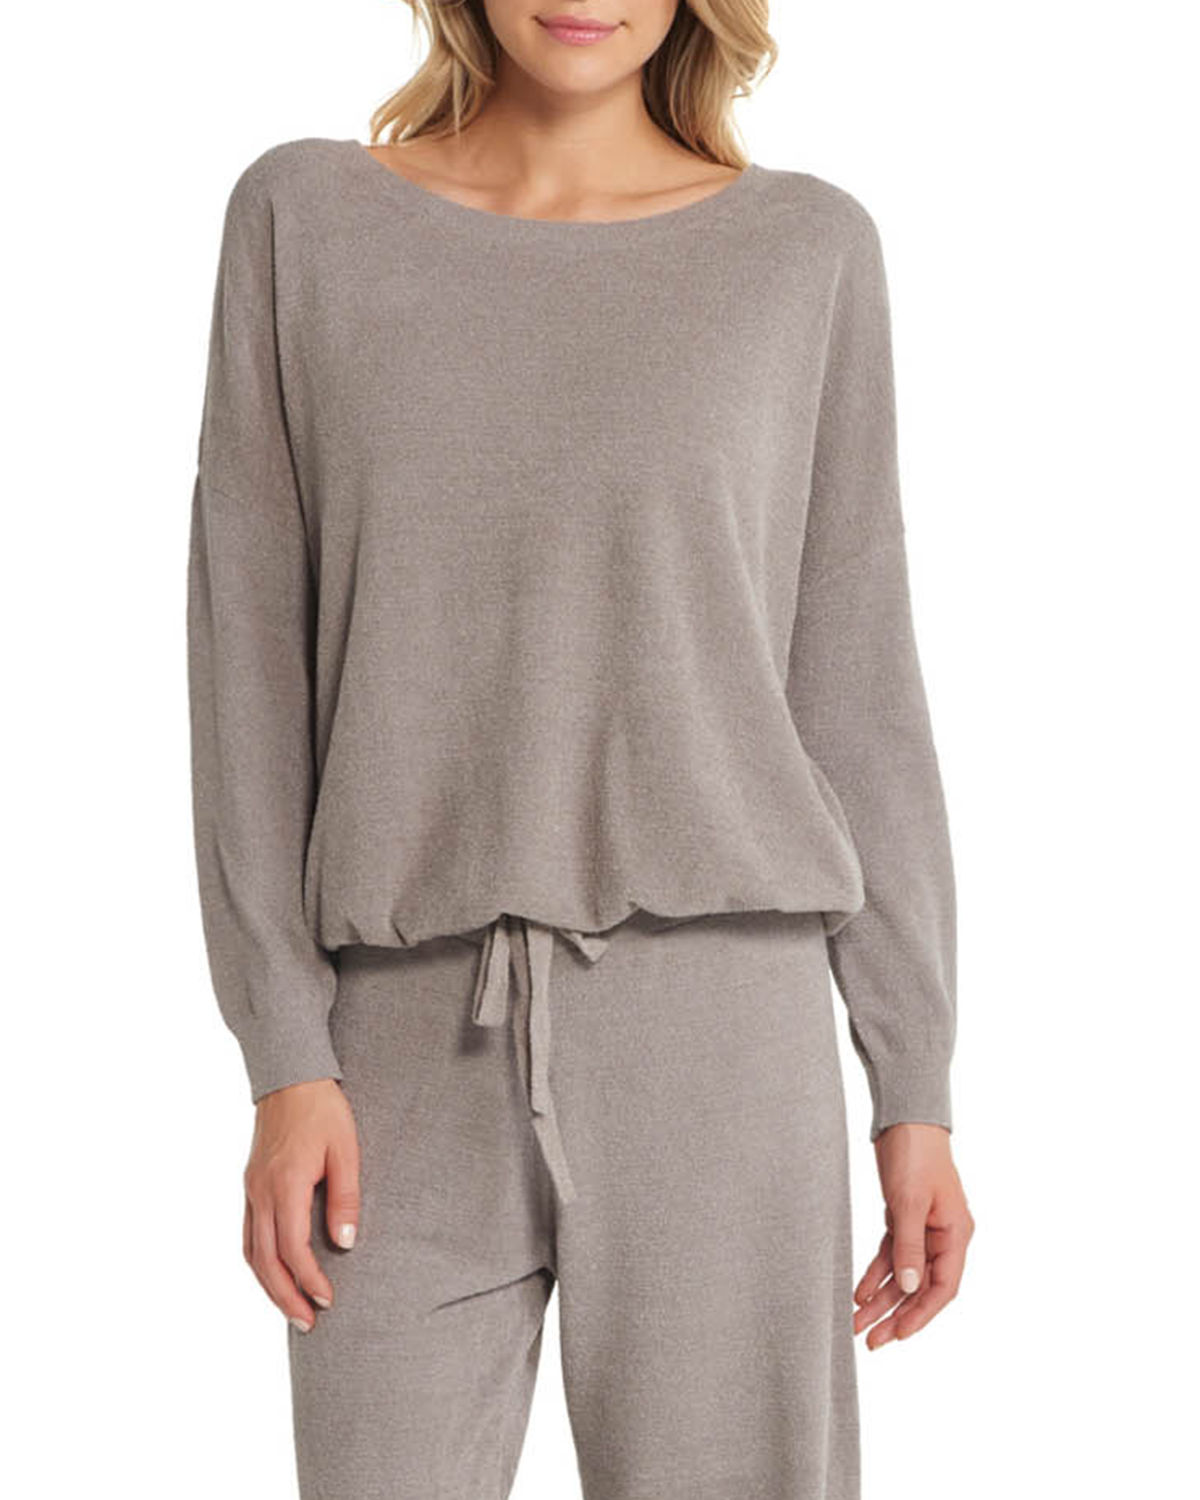 CozyChic Ultra Lite Slouchy Pullover